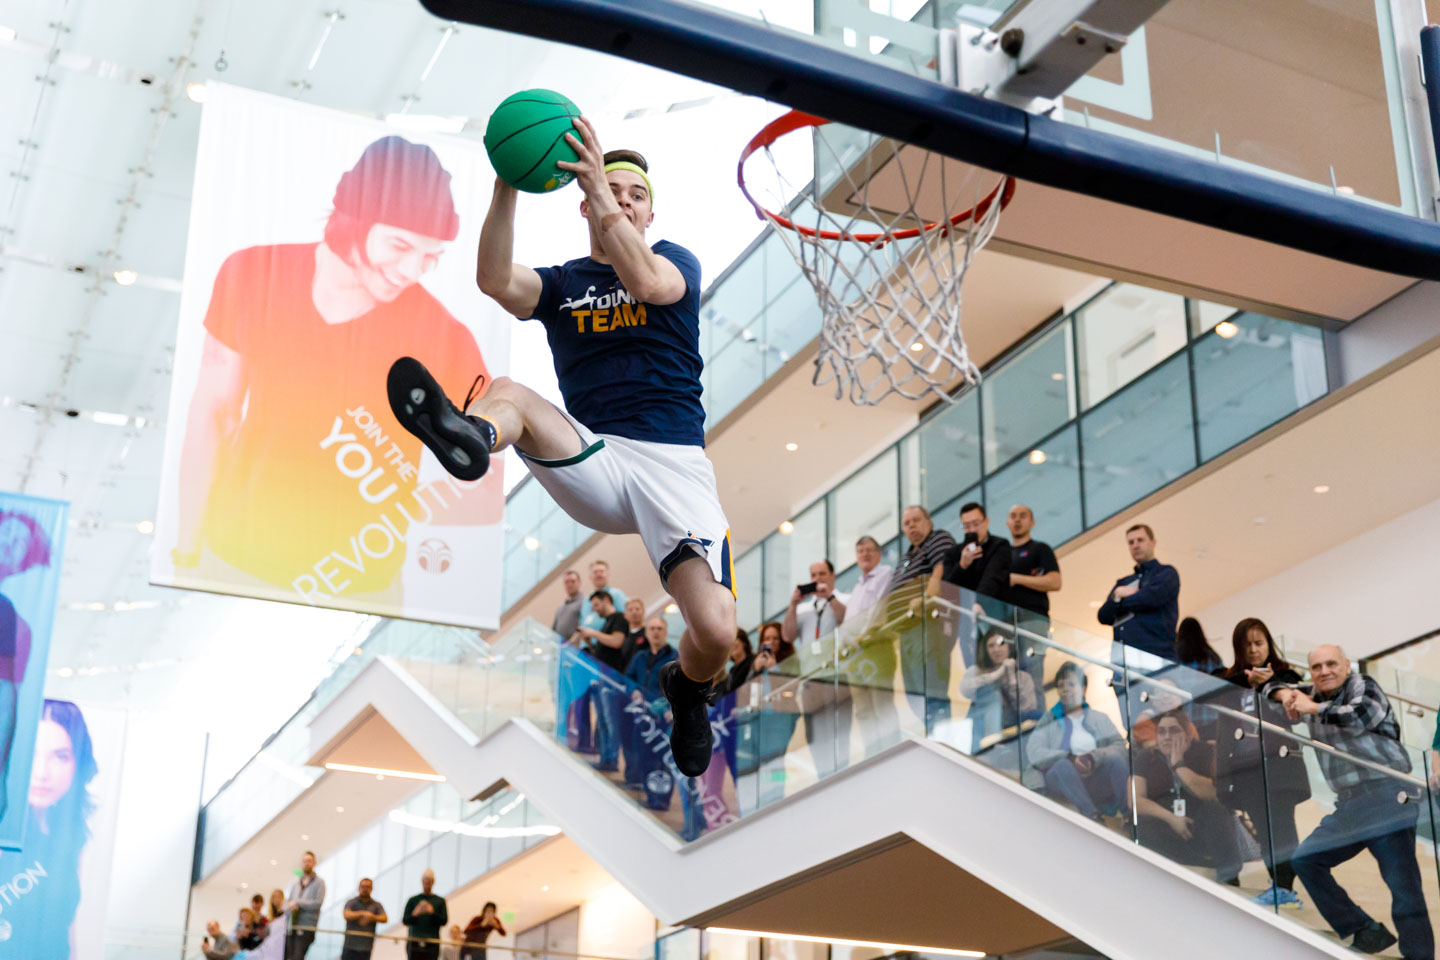 Utah Jazz Dunk Team flying high